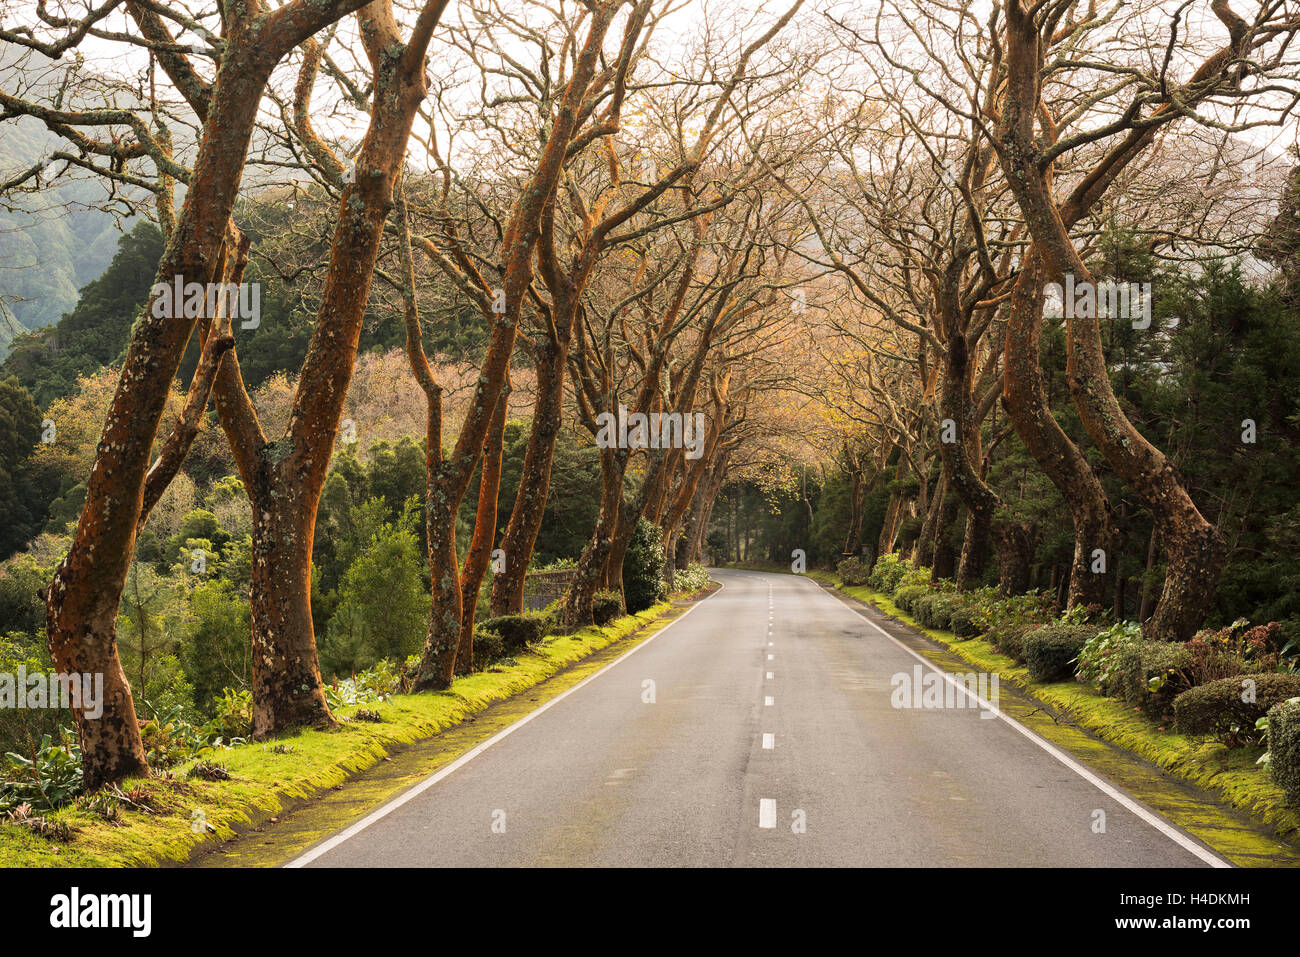 Avenue with Furnas, Sao Miguel, the Azores, Portugal - Stock Image